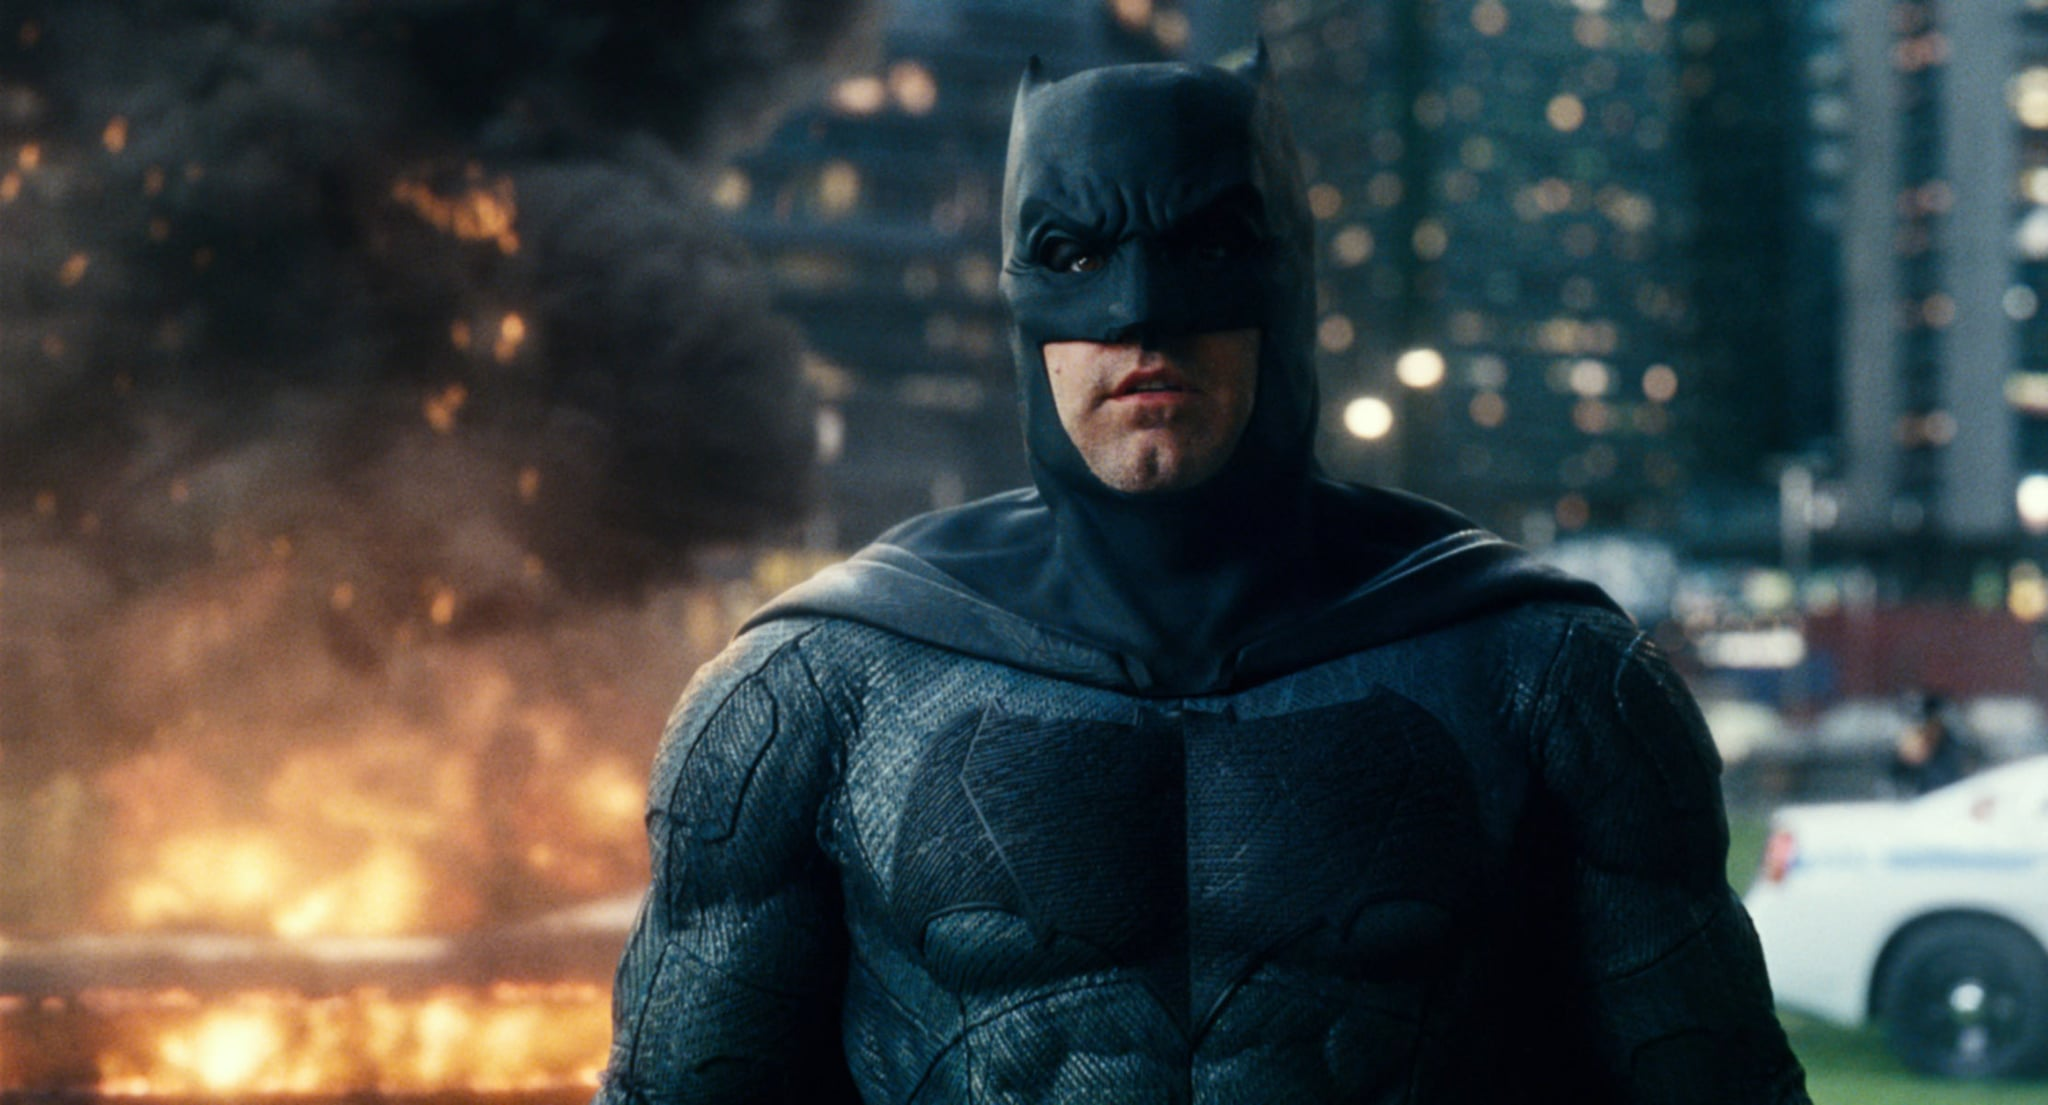 JUSTICE LEAGUE, Ben Affleck as Batman, 2017.  Warner Bros. Pictures /Courtesy Everett Collection